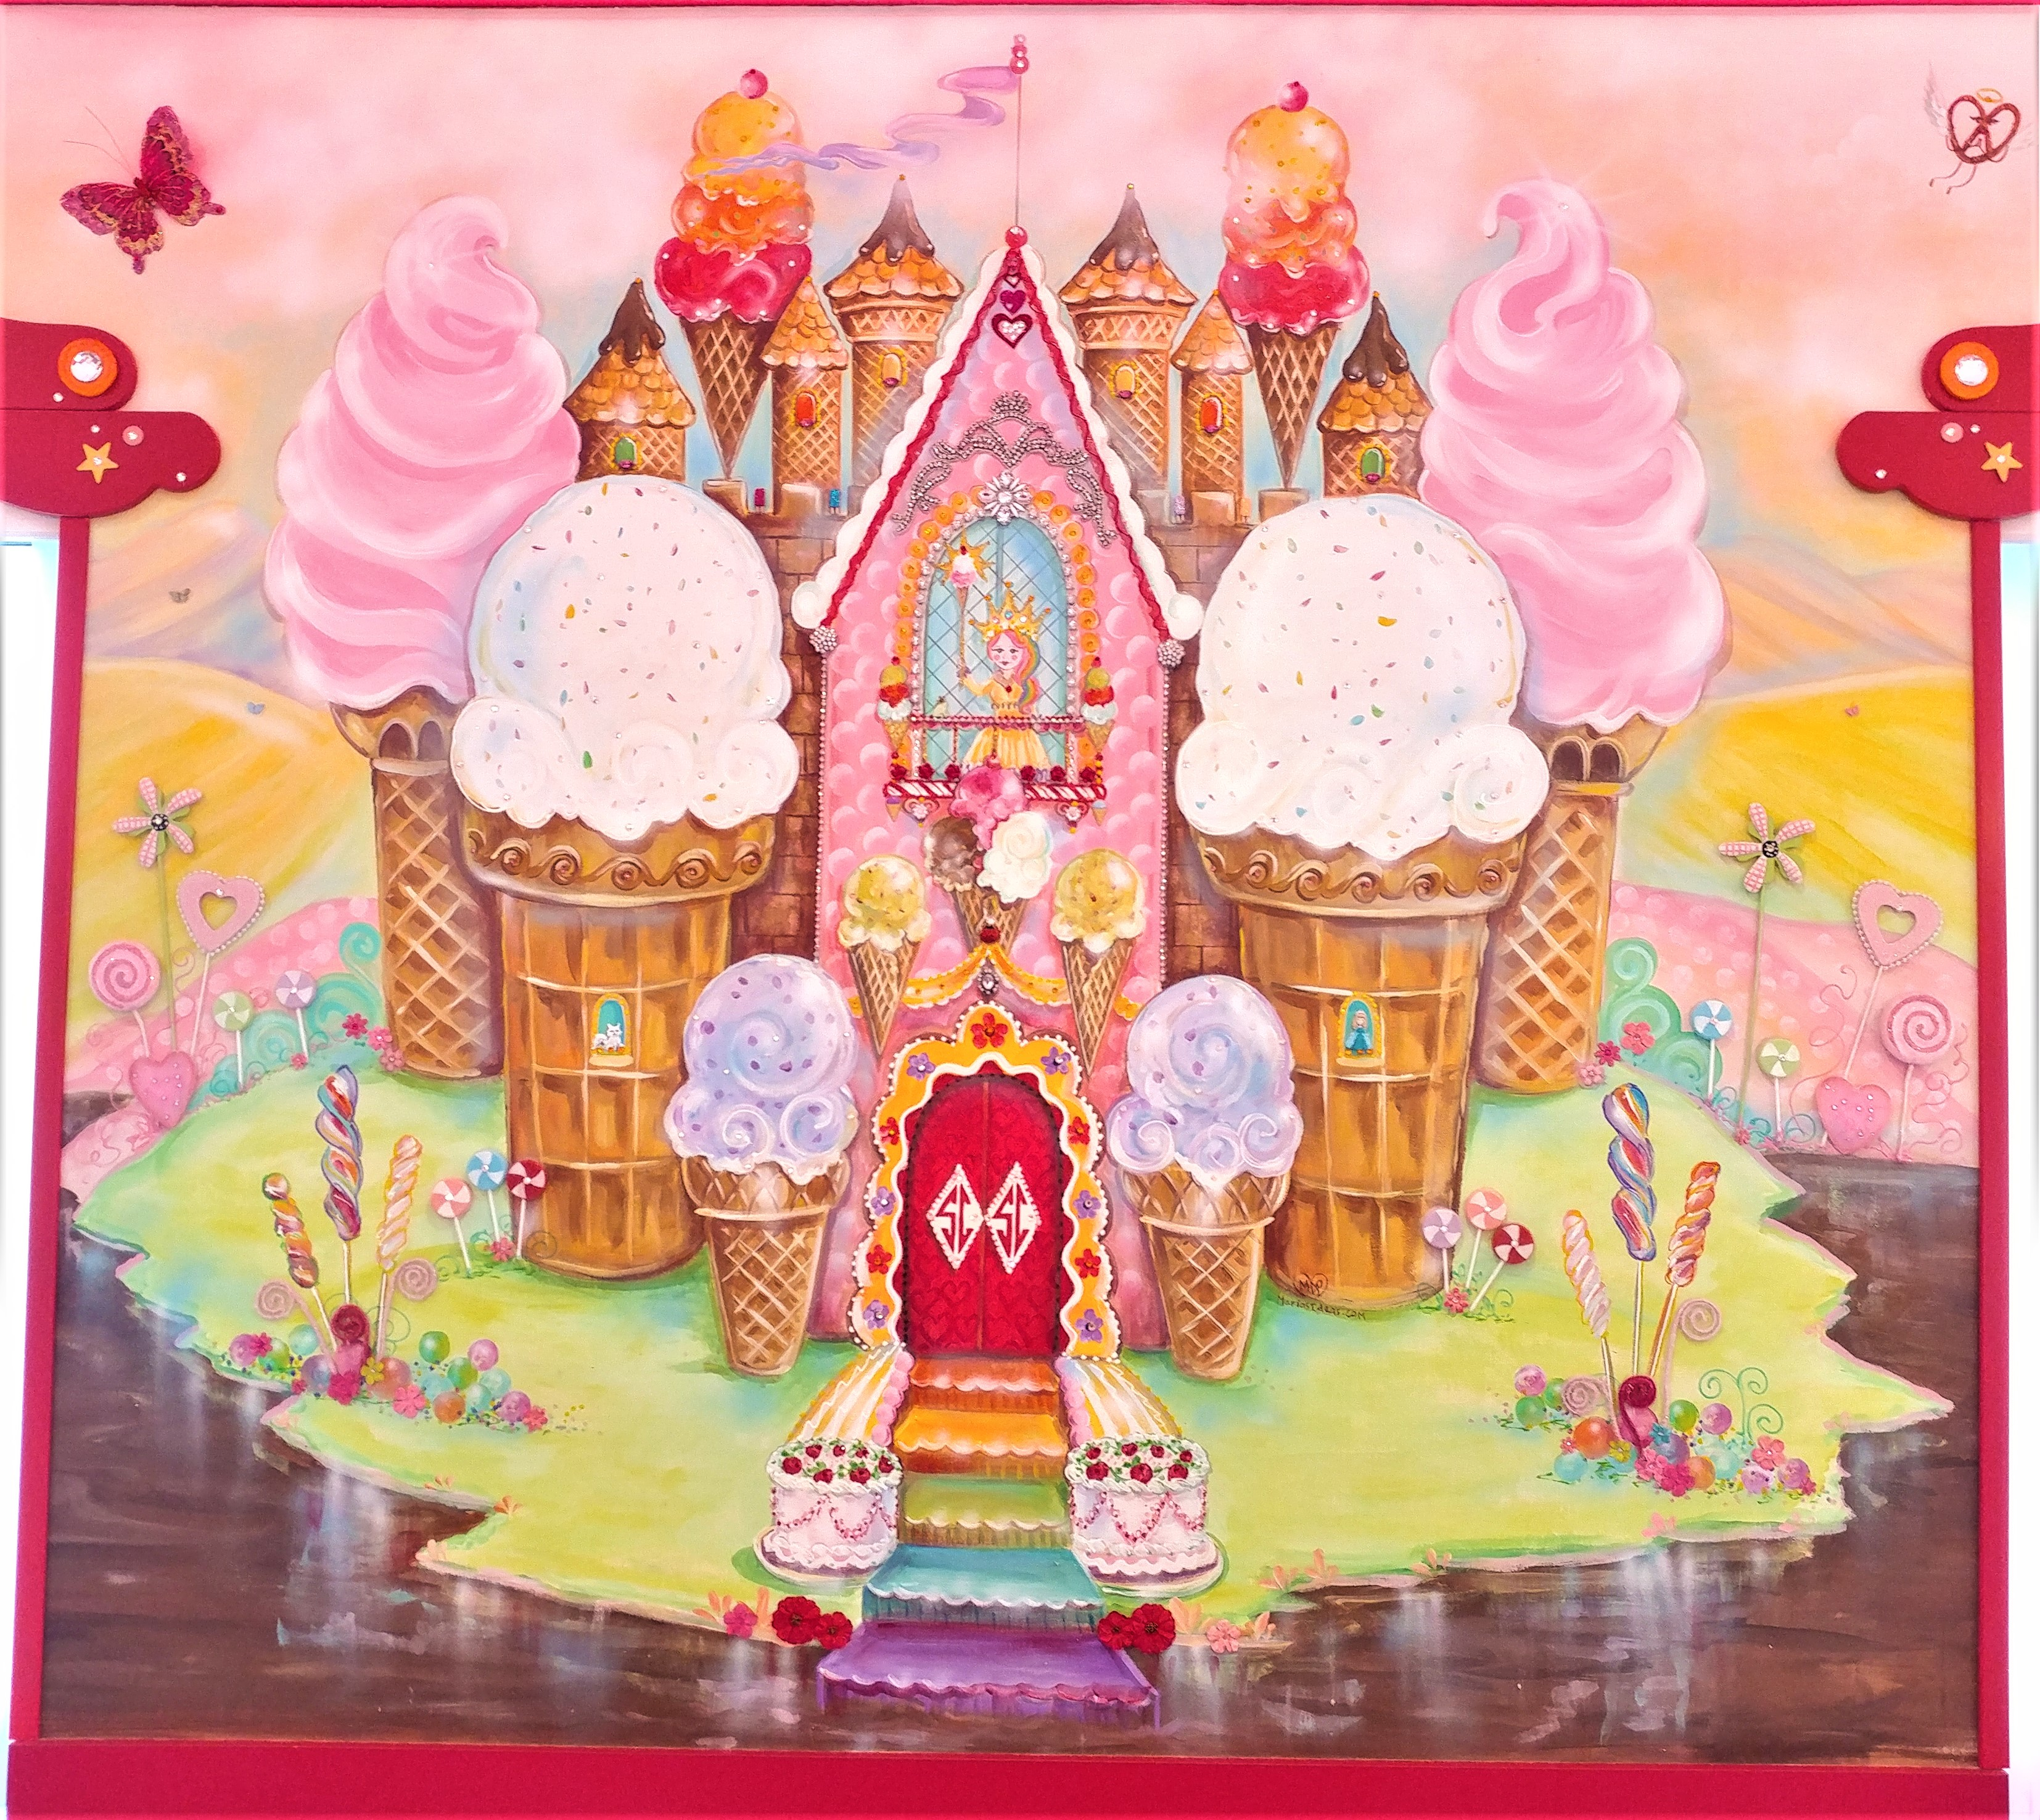 candyland, sarris candies, hand painted, murals, cany art, whimsical art, maria desimone prascak